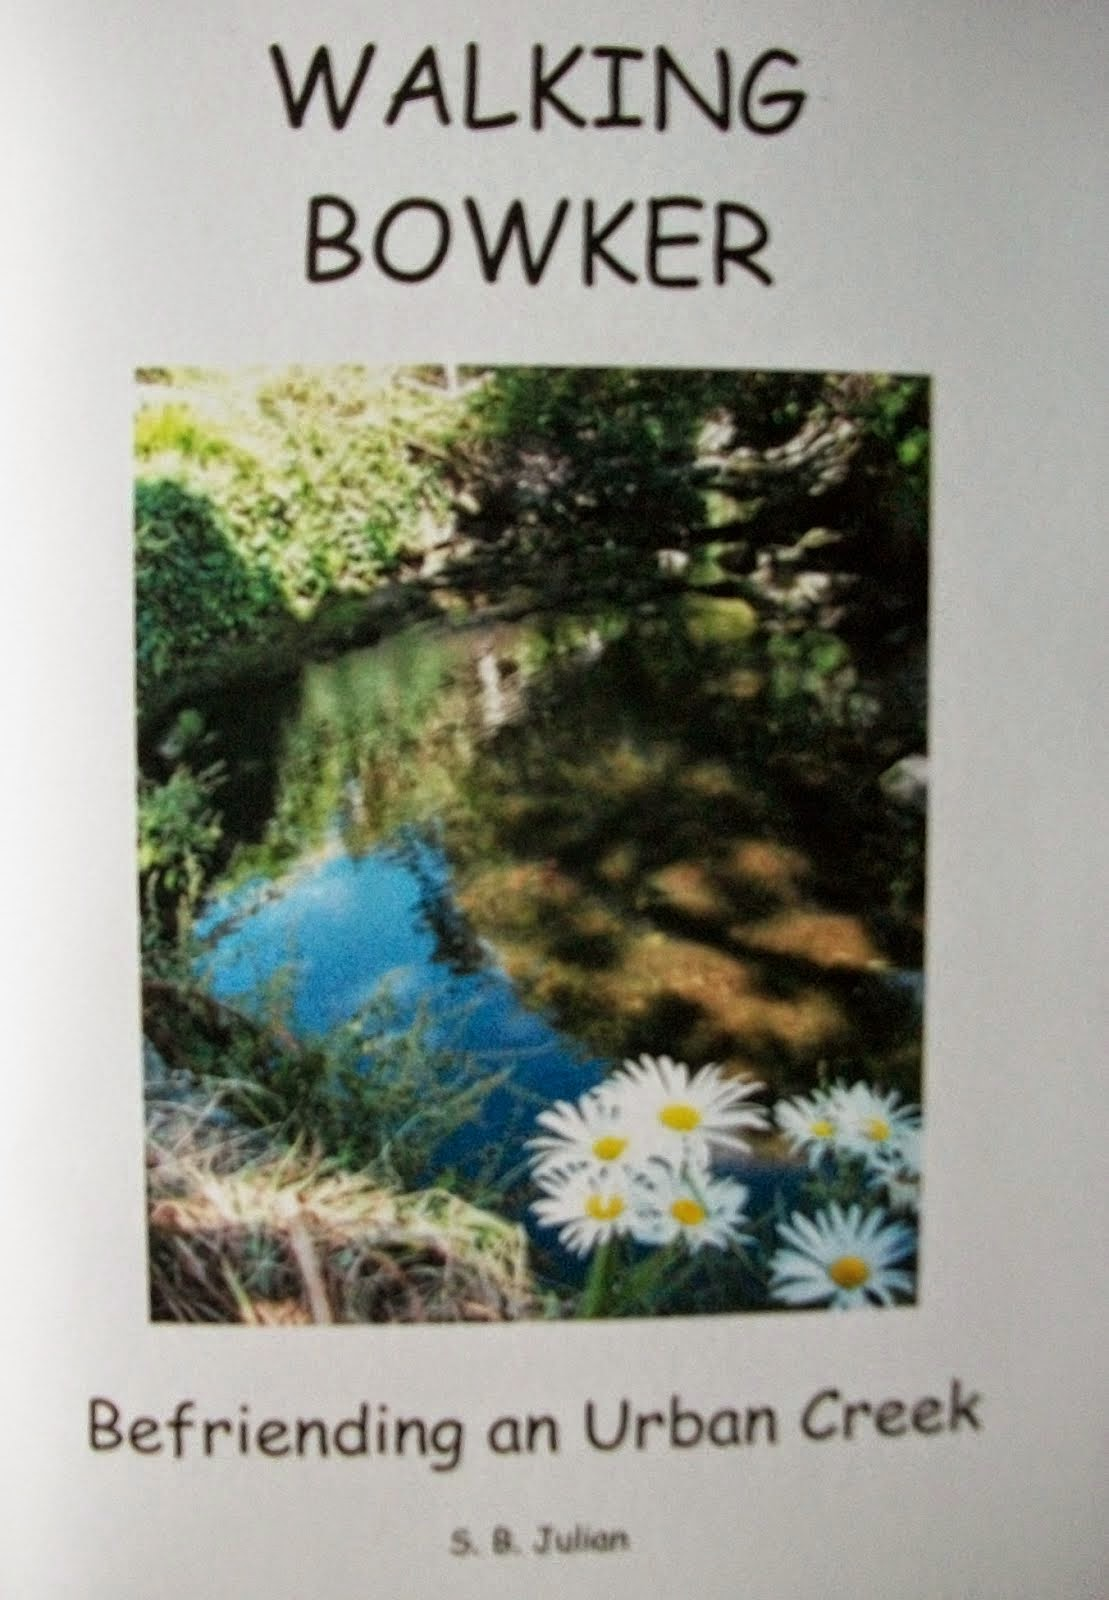 Walking Bowker